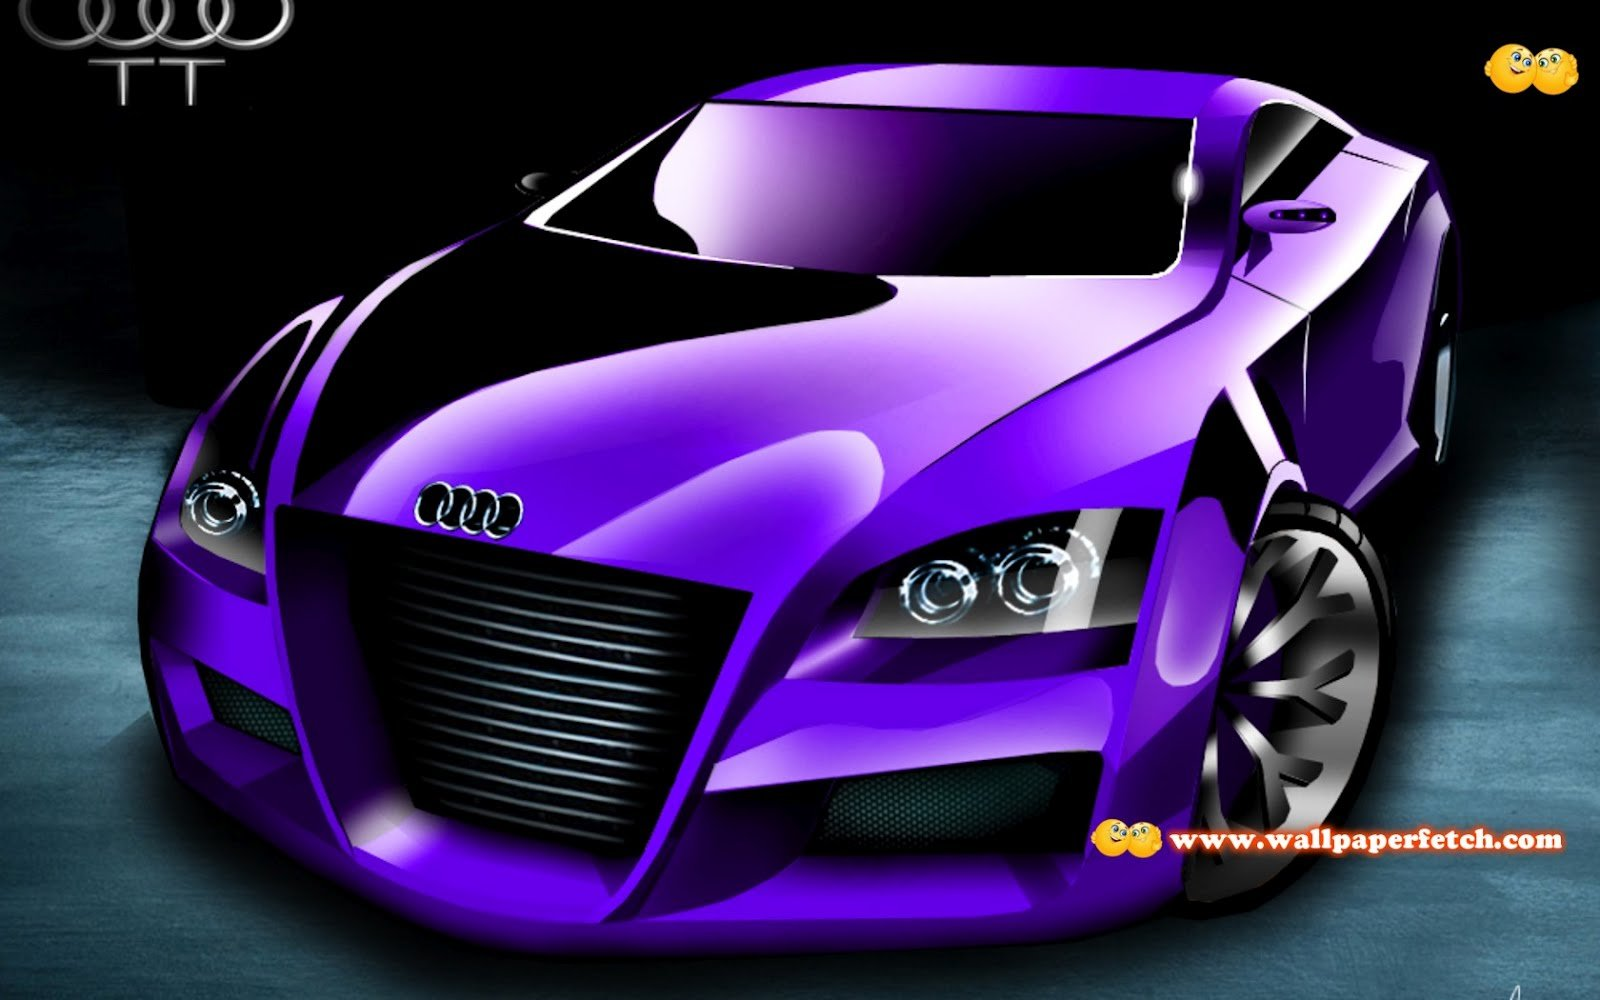 Latest Wallpaper Wallpaper Hd Voiture Tuning Free Download